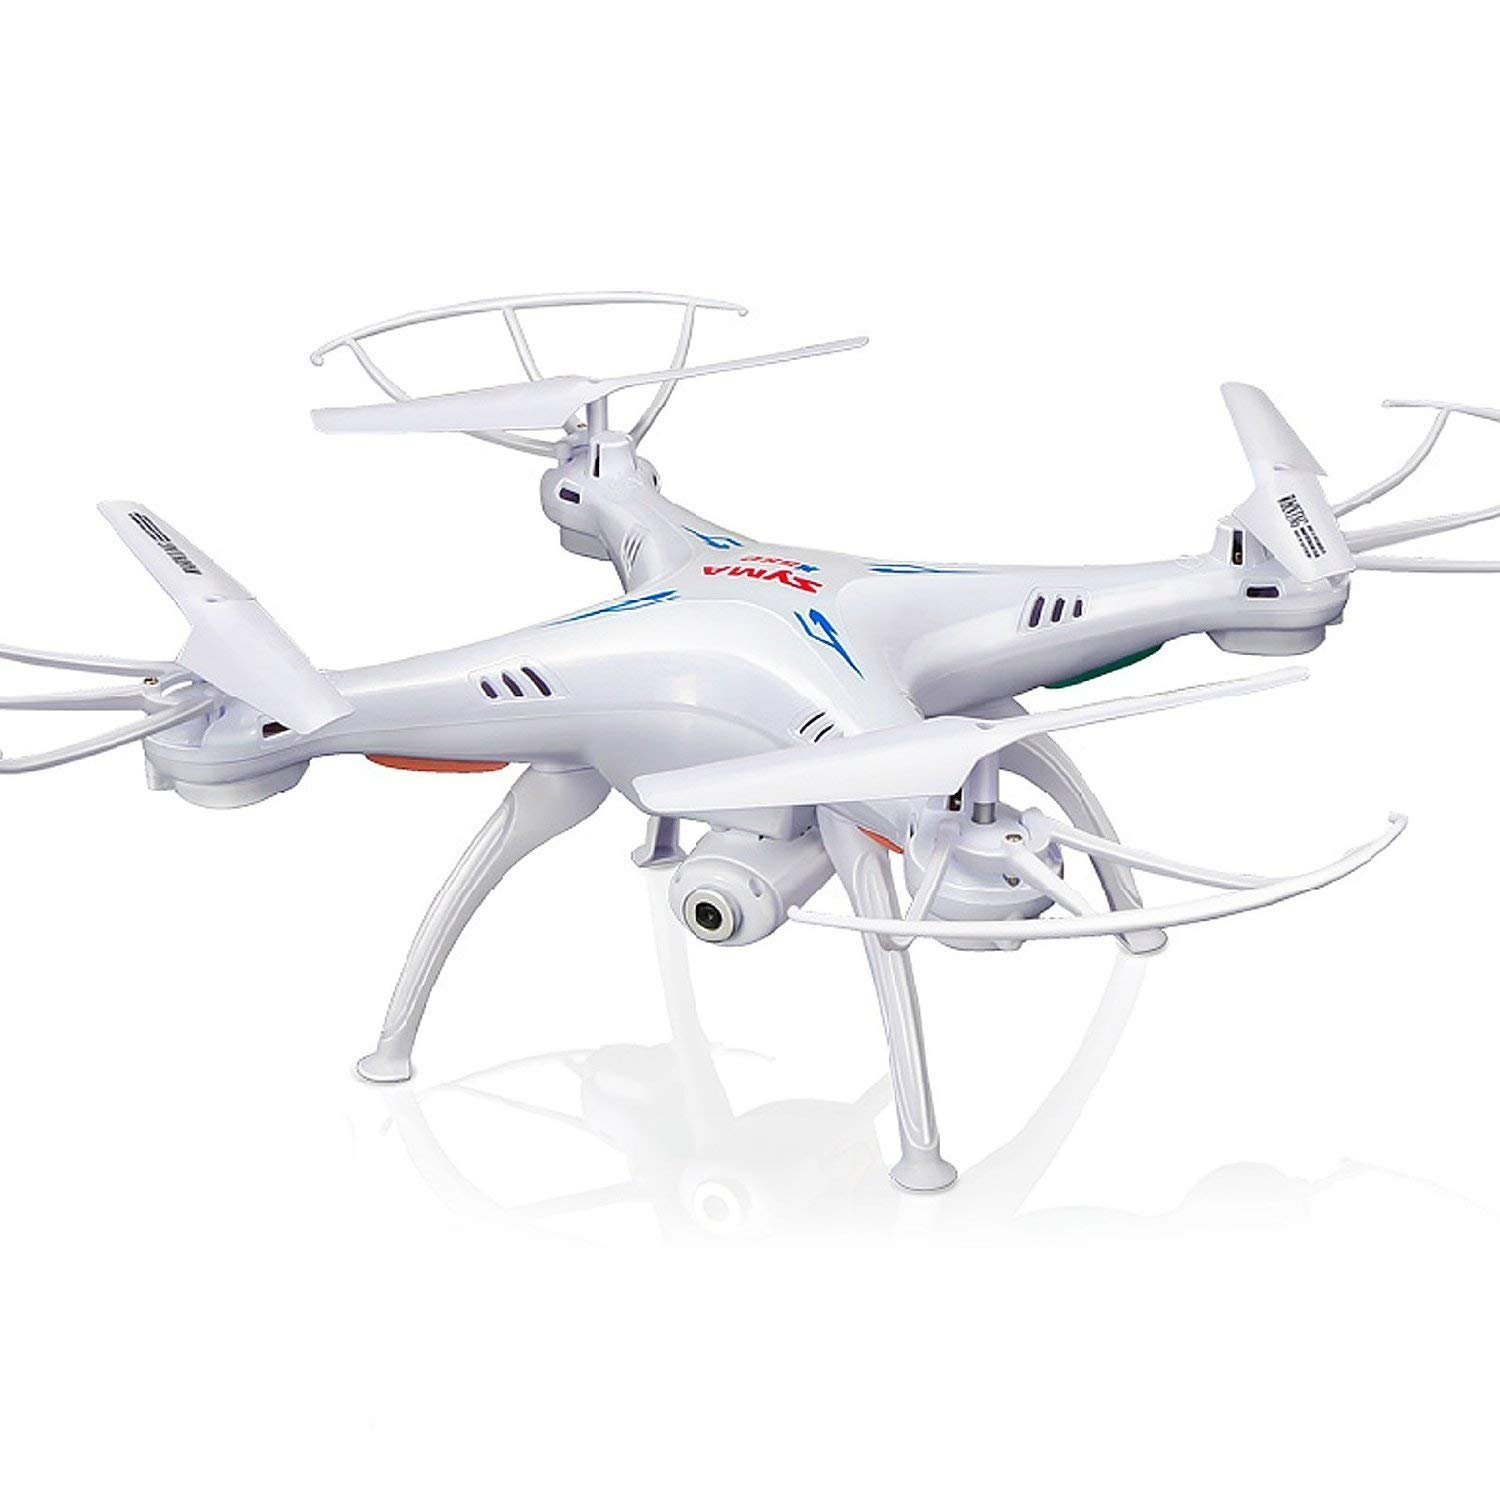 Cheerwing Syma X5SW-V3 FPV Explorers2 2.4Ghz 4CH 6-Axis Gyro RC Headless Quadcopter Drone UFO with WiFi Camera White